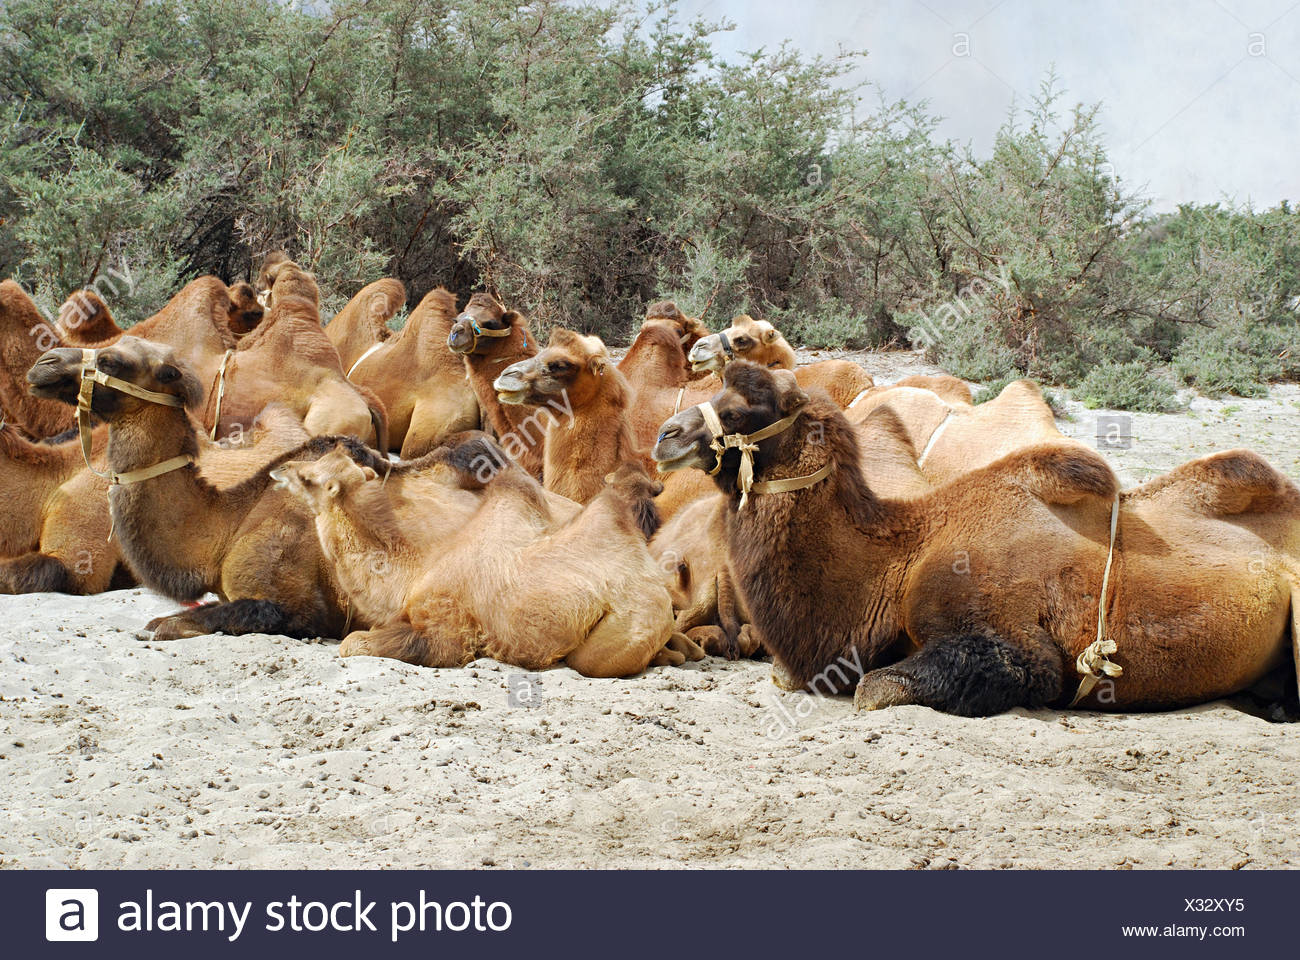 Shaggy Bactrian (two- humped) camels which are shorter and stouter. Their humps are plump and pliable and collapse in winter whe - Stock Image